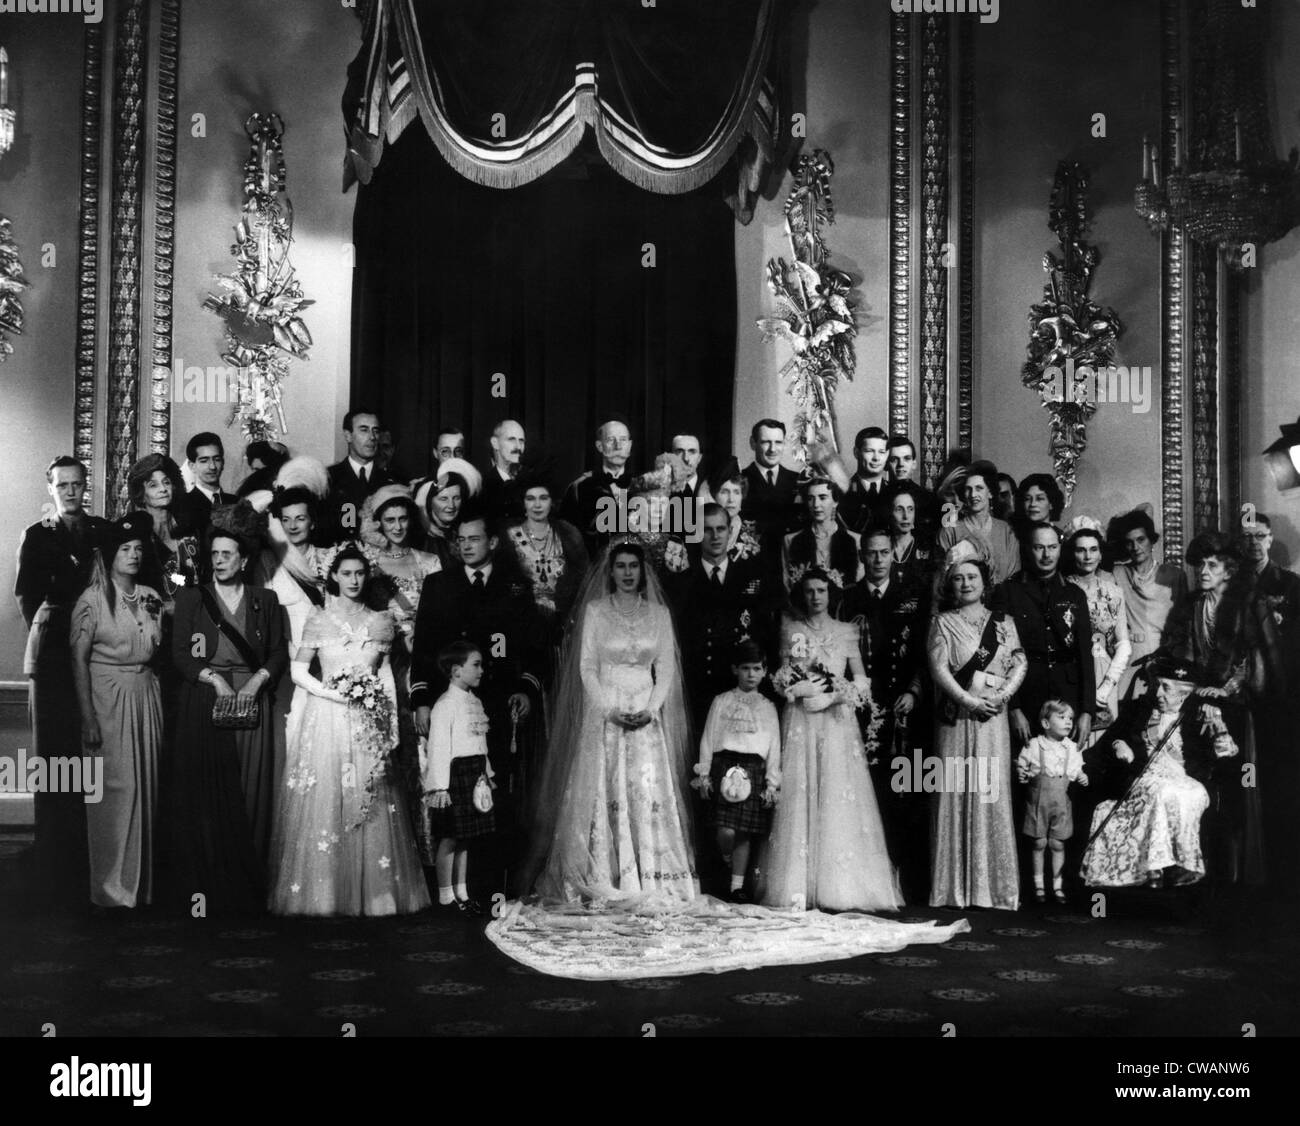 Queen Elizabeth Hochzeit Queen Elizabeth Ii Wedding Stock Photos Queen Elizabeth Ii